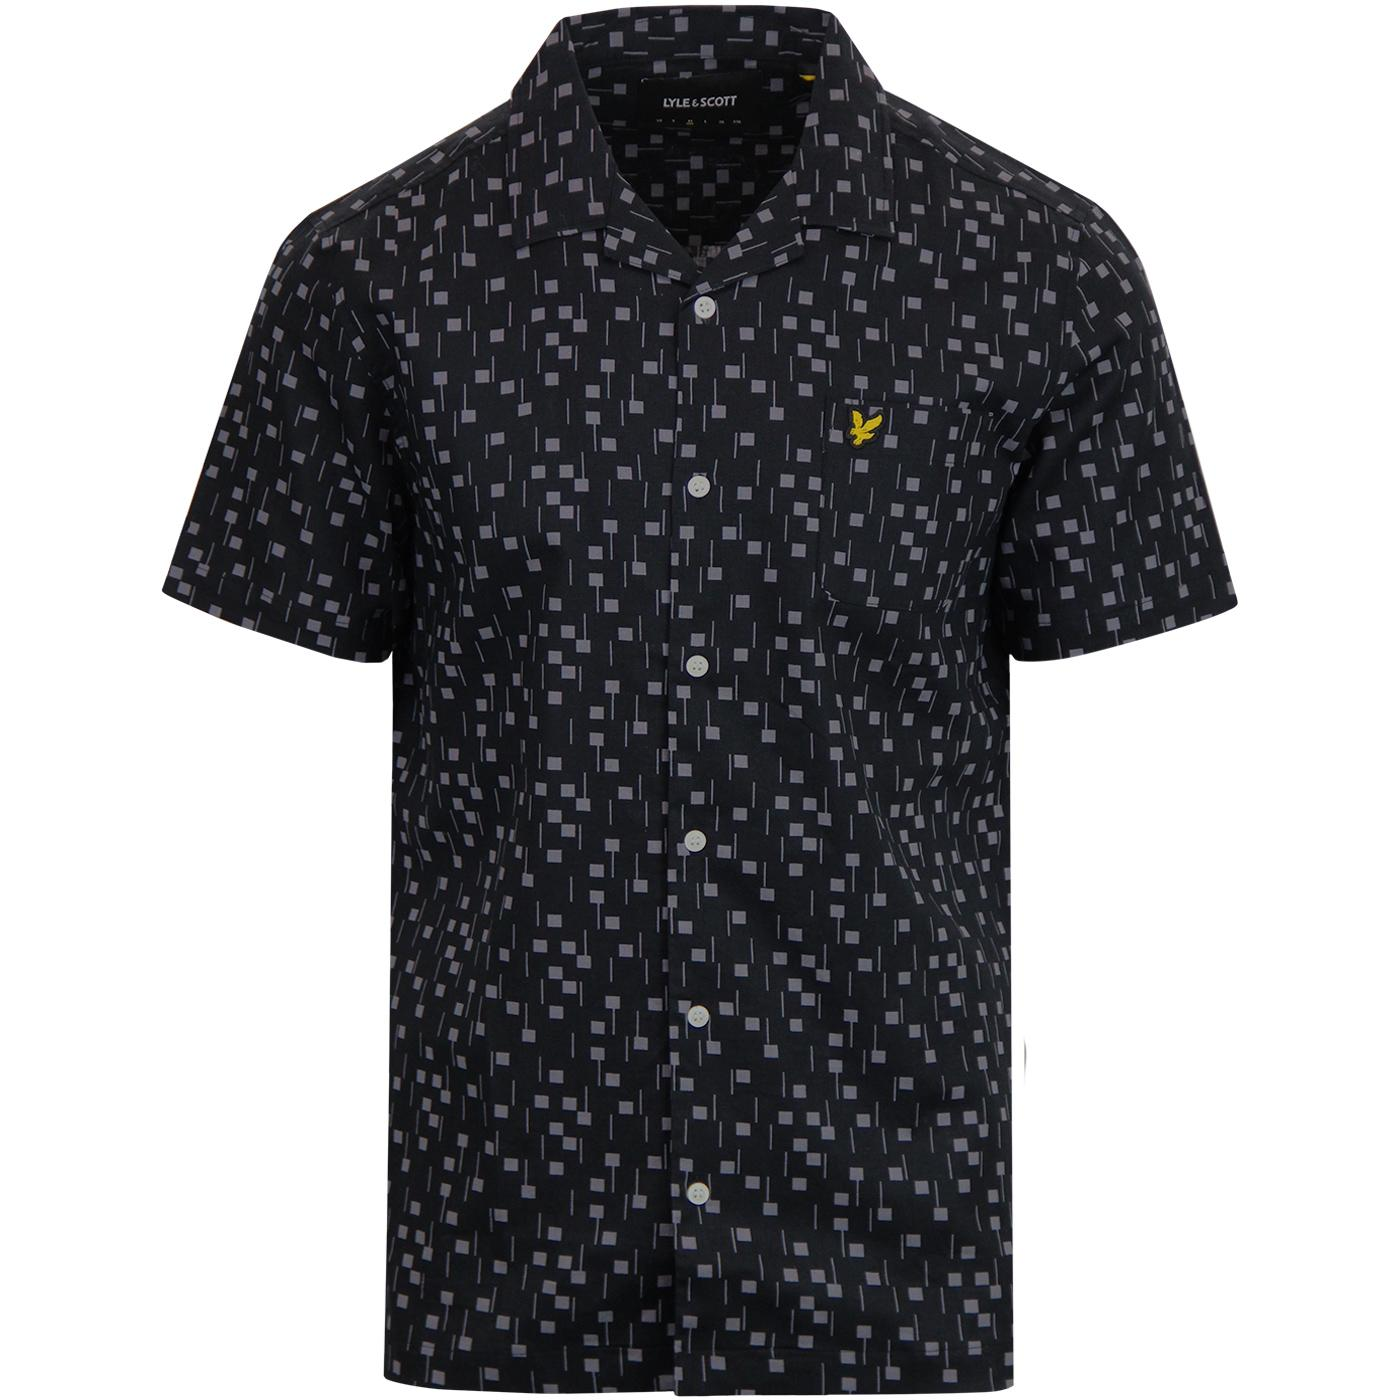 LYLE & SCOTT Retro 70s Tile Print Resort Shirt